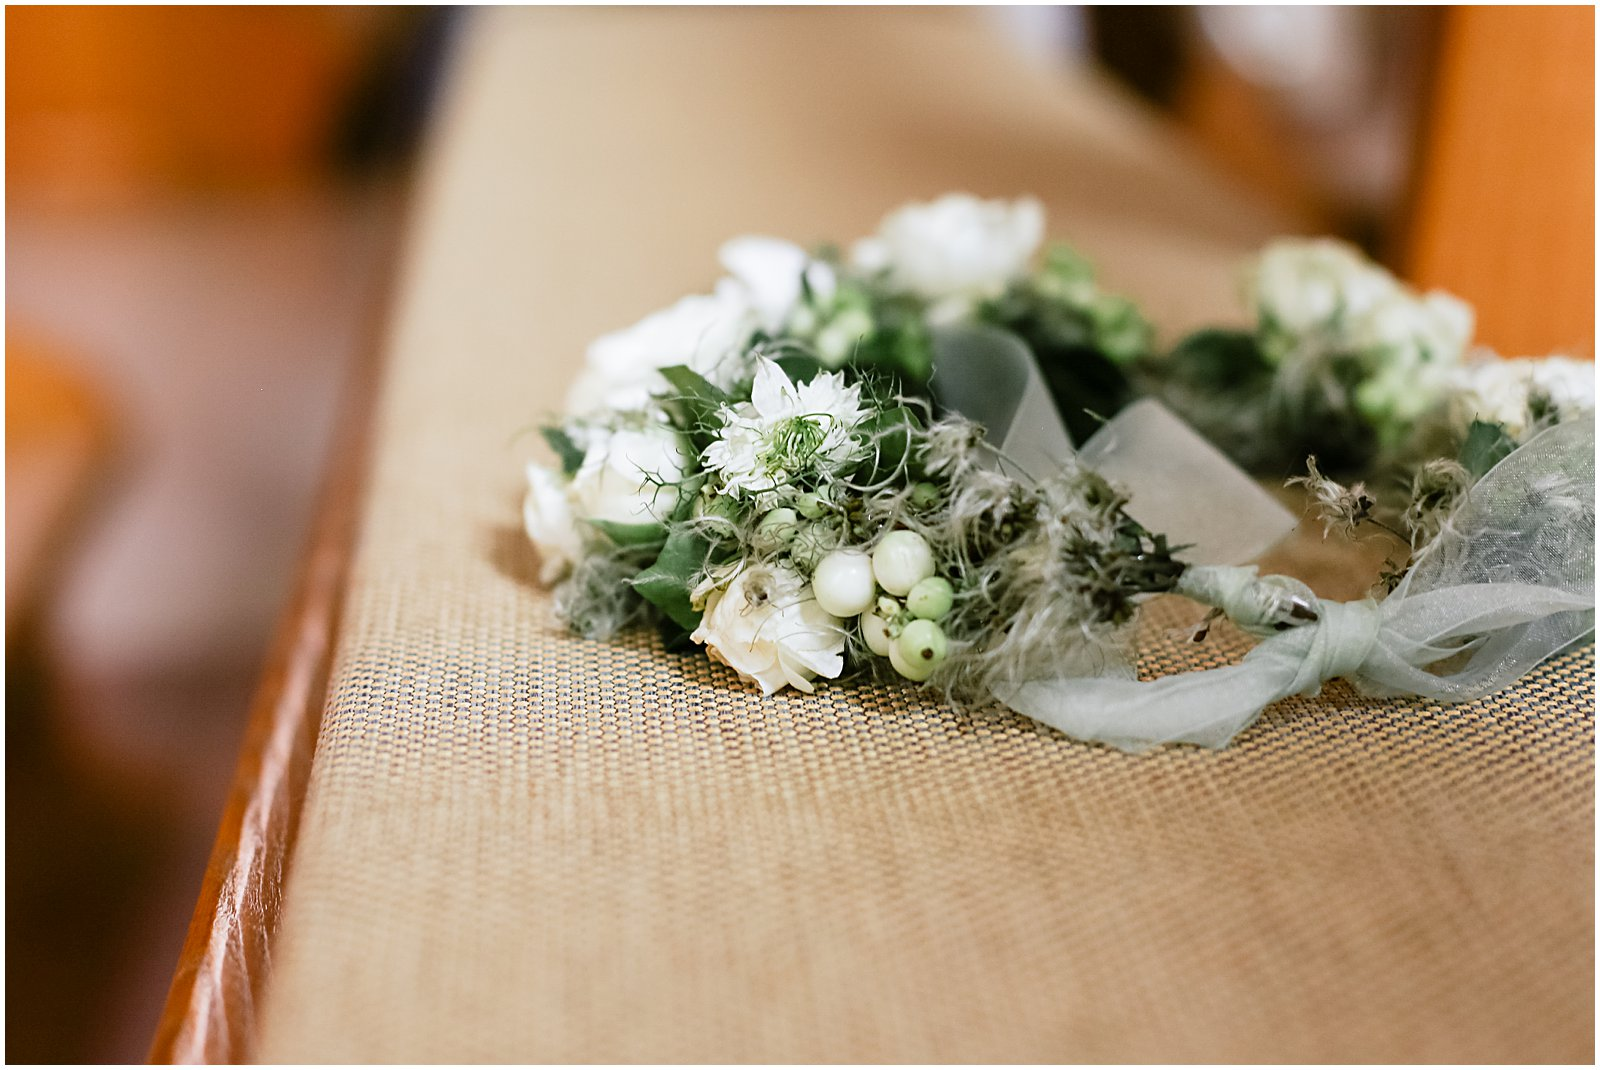 flower wedding crown at church photographed by Helena Woods